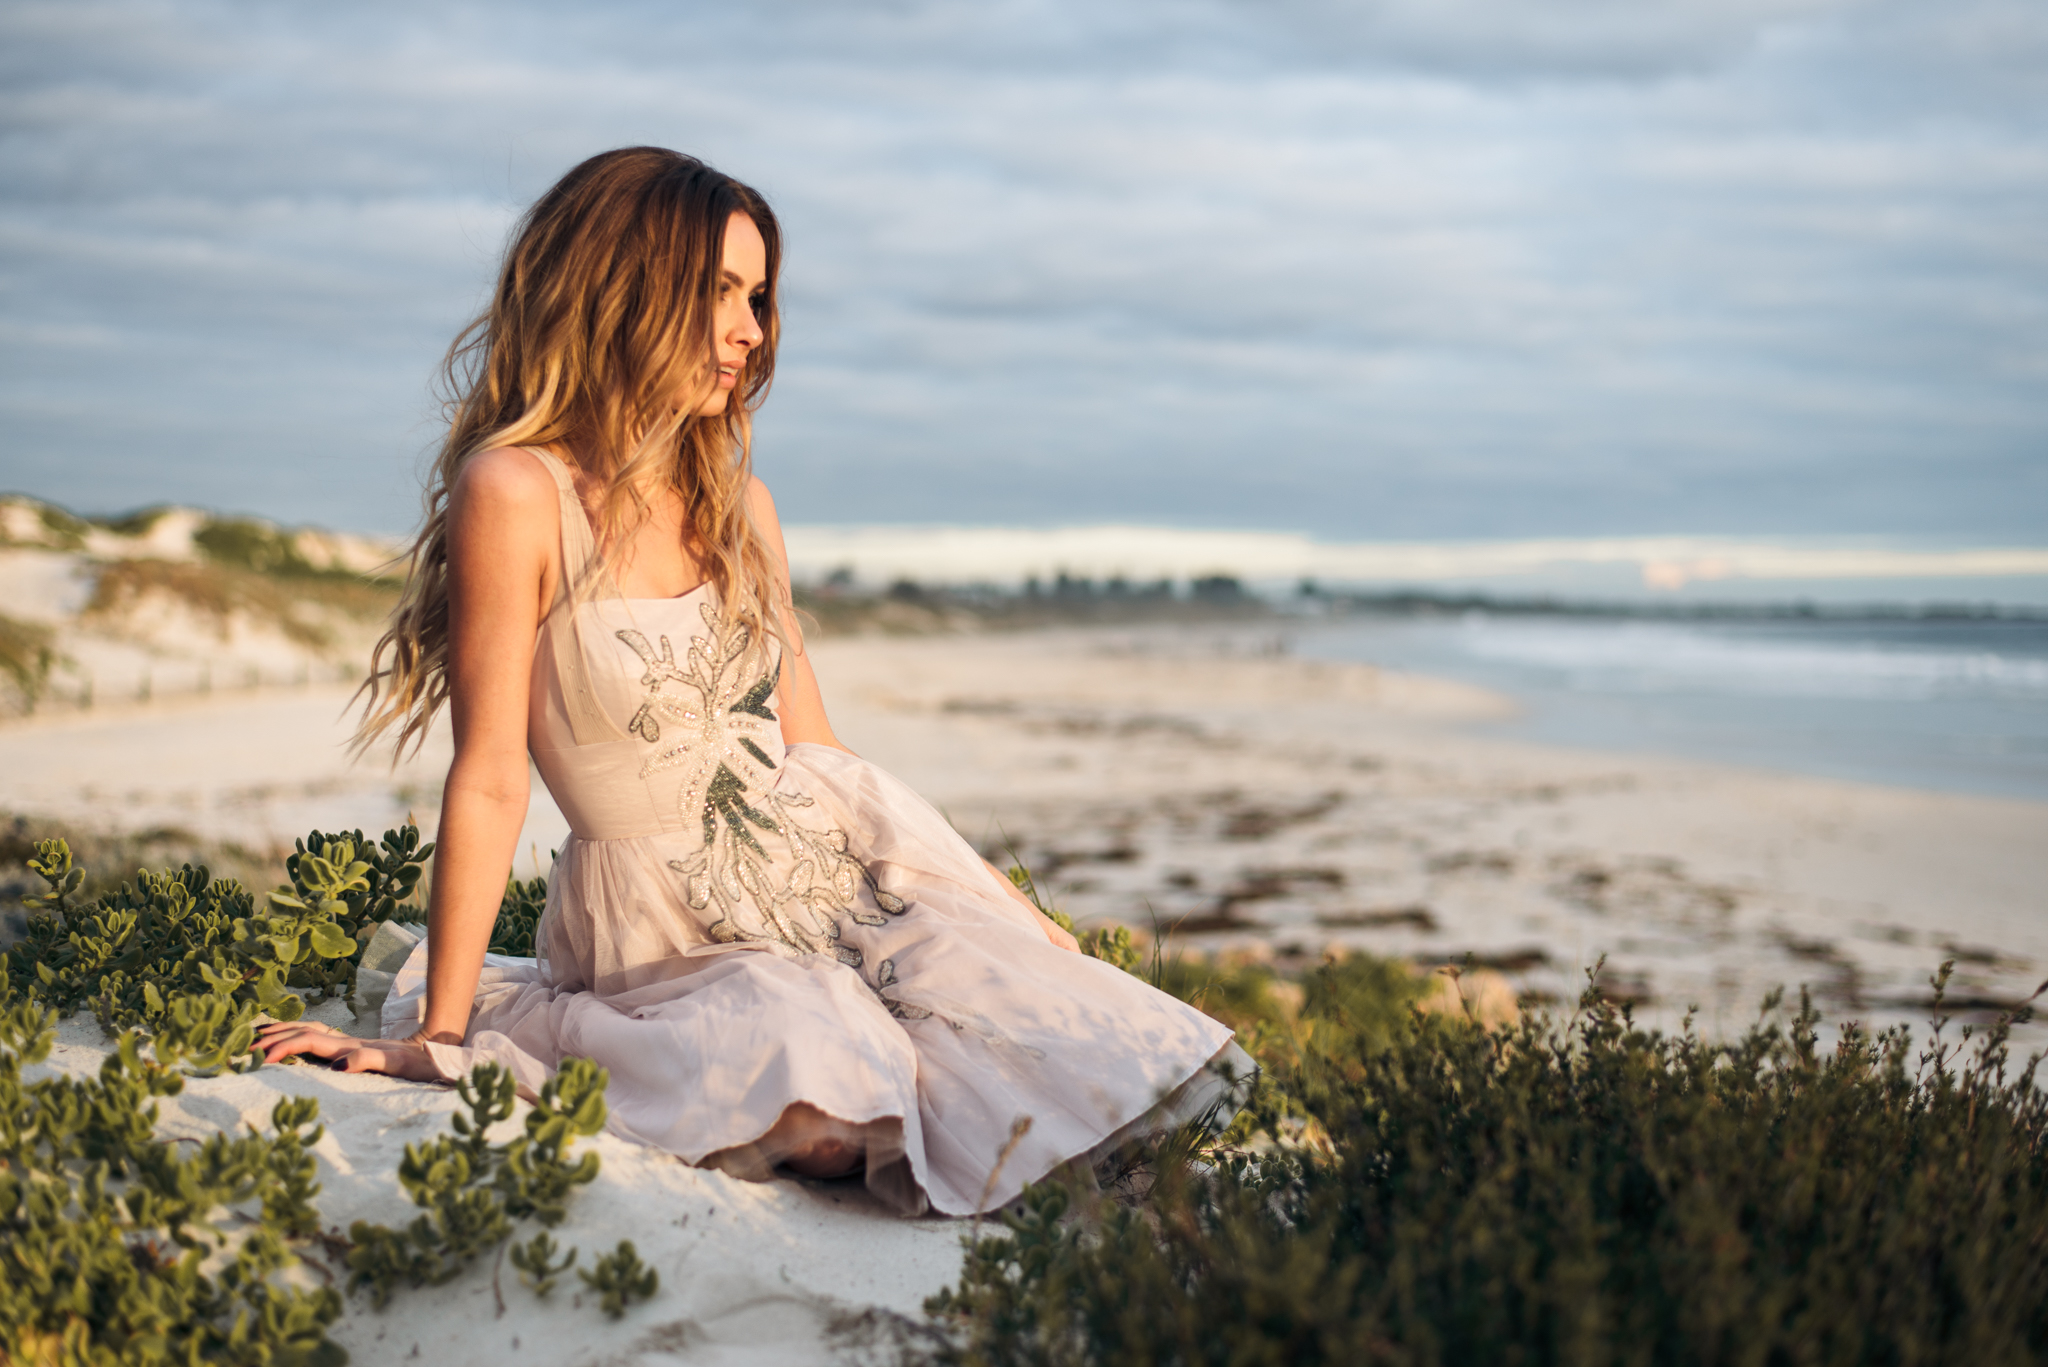 Out of the Woods - Ocean Reef Beach shoot Perth - Katie Rebekah Blog